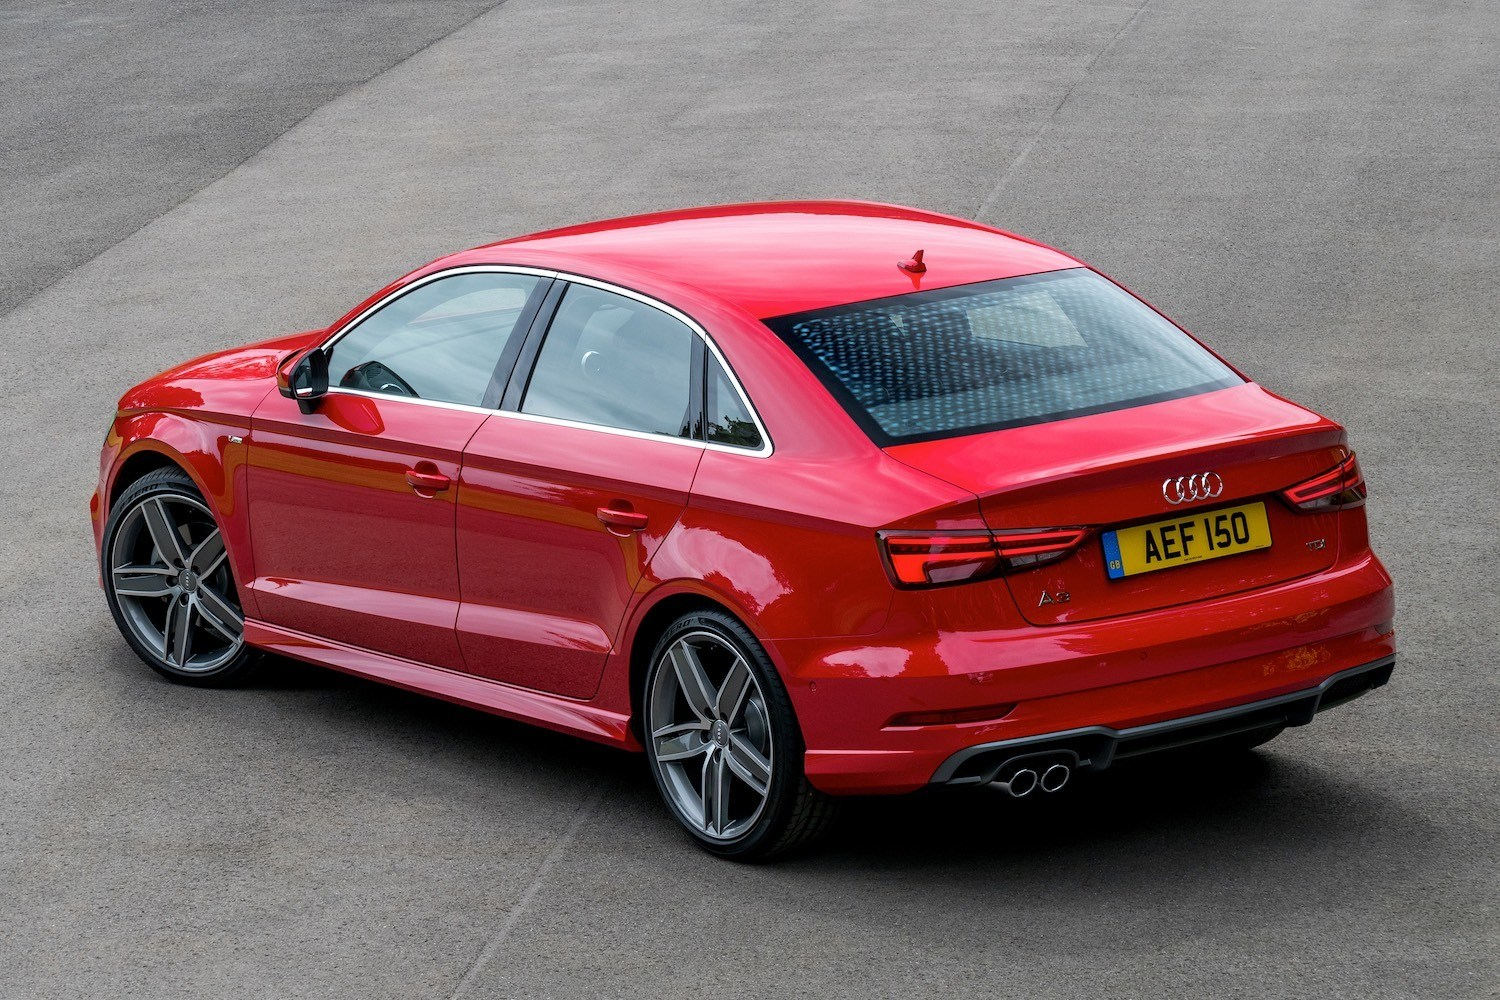 we review the audi a3 saloon 1 6 tdi s tronic s line. Black Bedroom Furniture Sets. Home Design Ideas